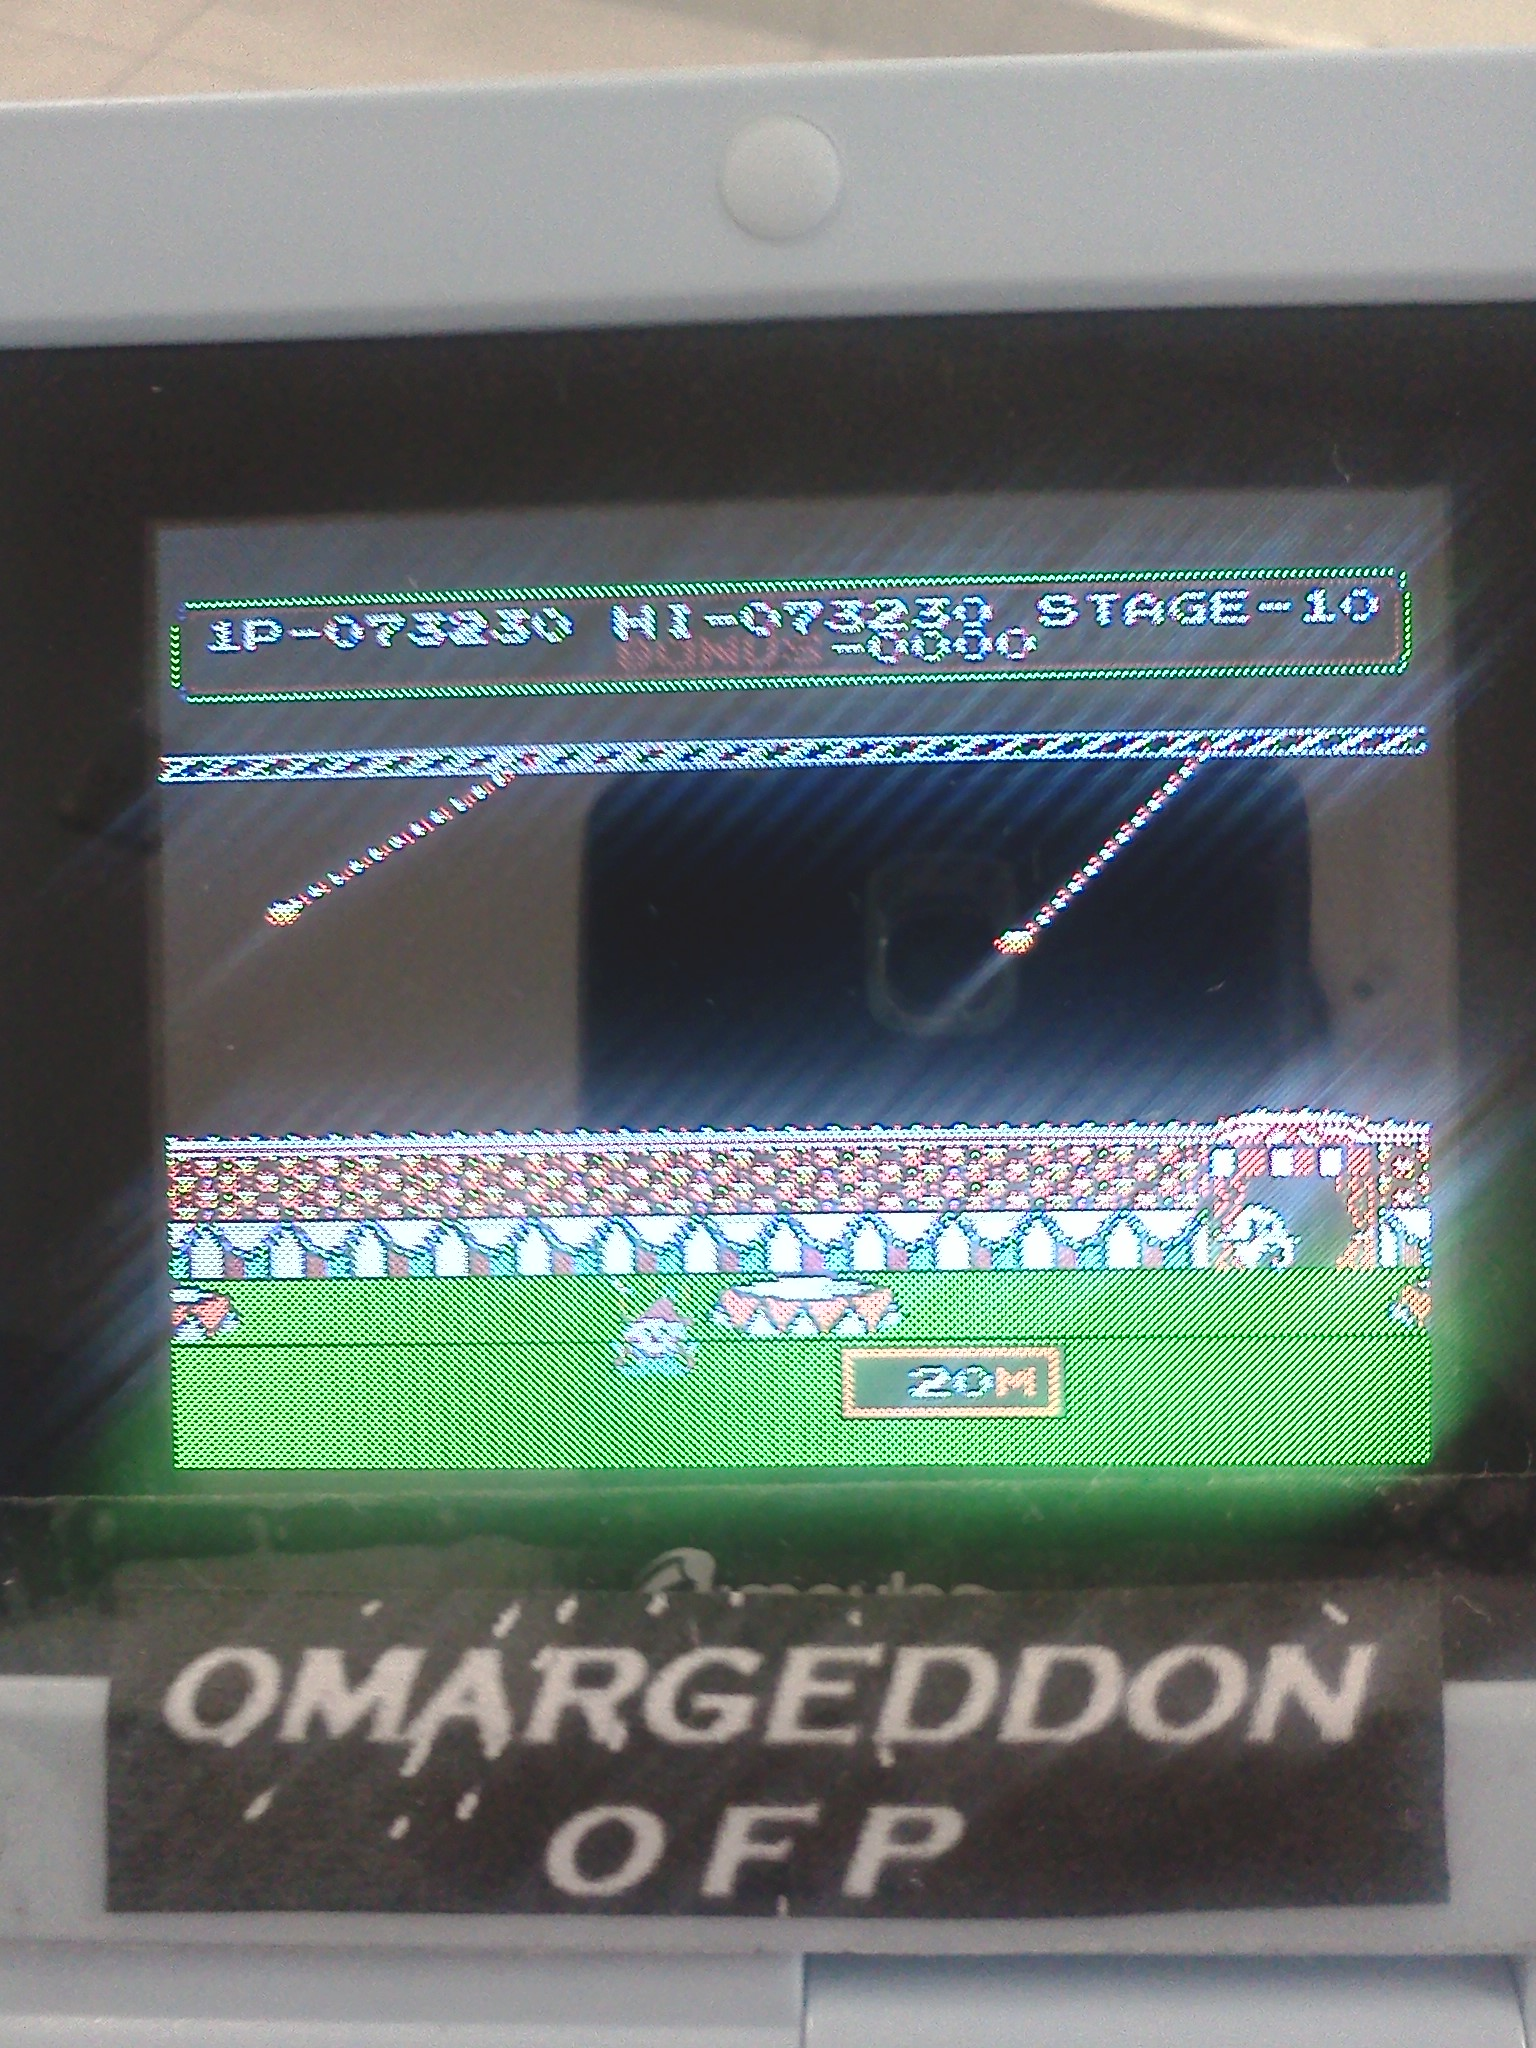 omargeddon: Circus Charlie (NES/Famicom Emulated) 73,230 points on 2016-08-01 15:54:52